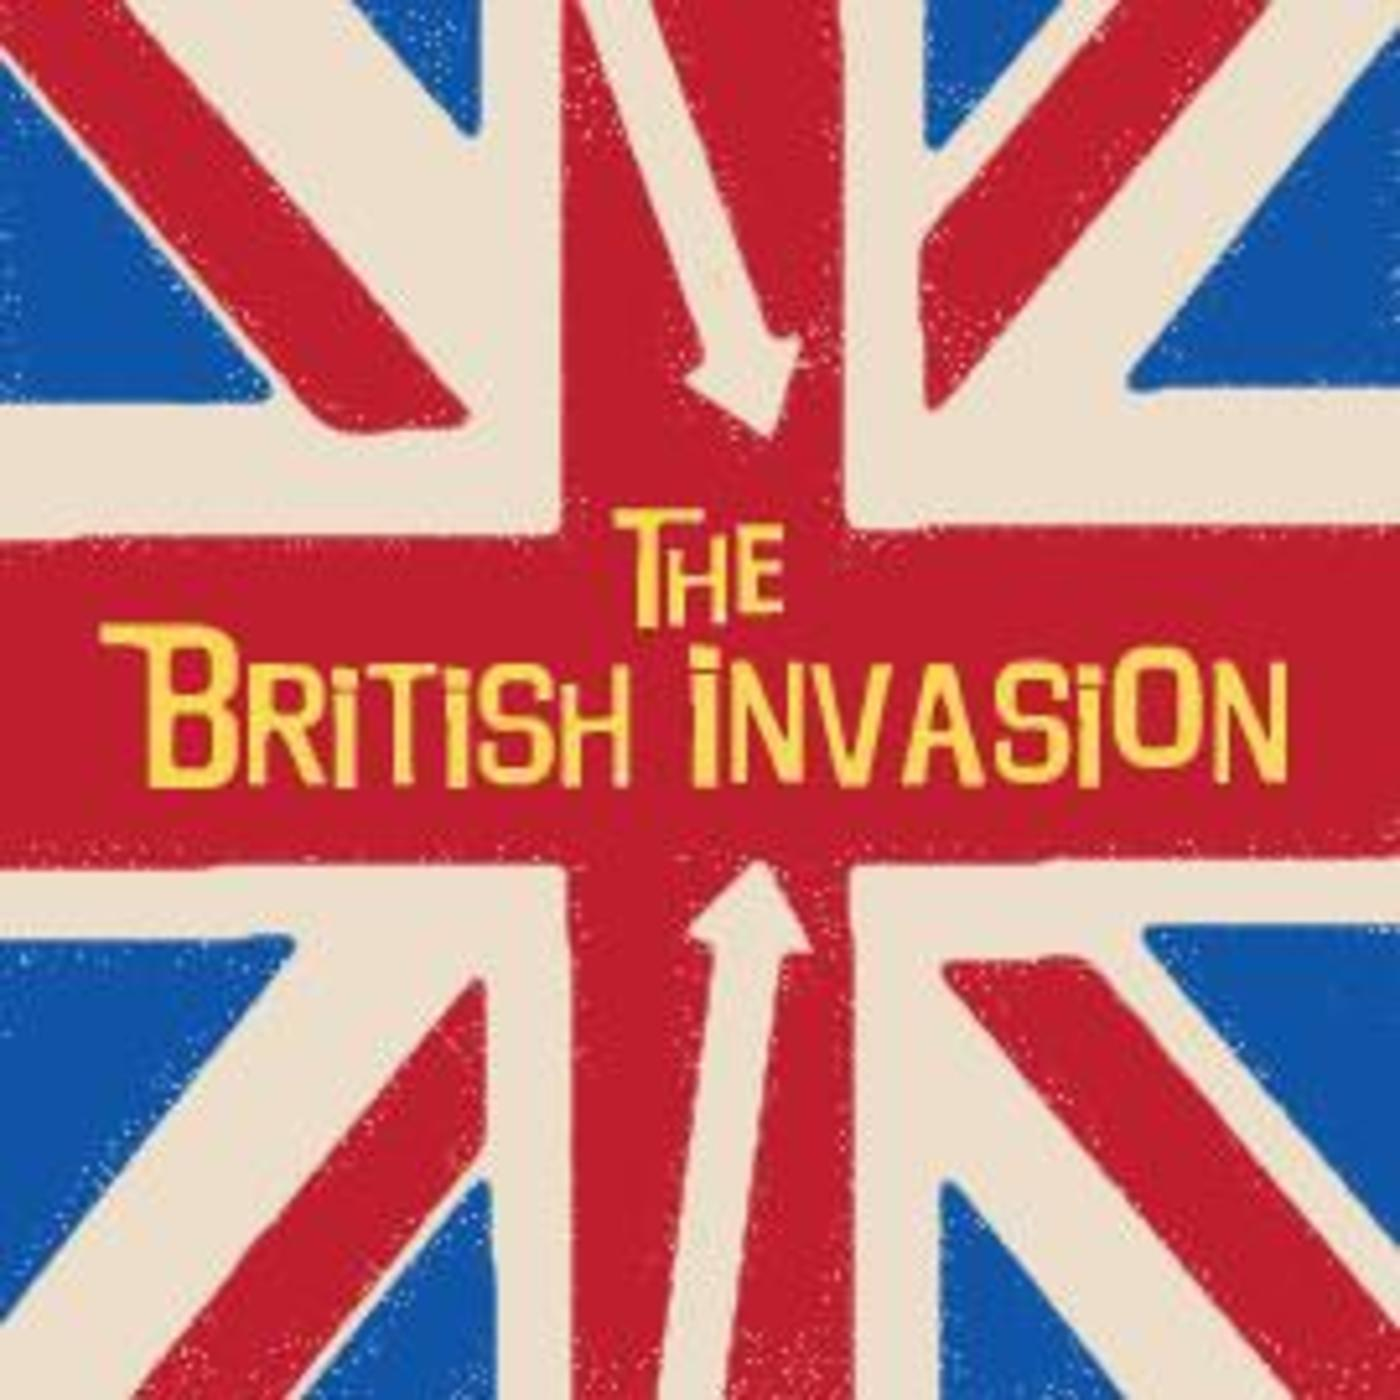 A TRIBUTE TO THE MUSIC OF THE BRITISH INVASION! 1-30-21